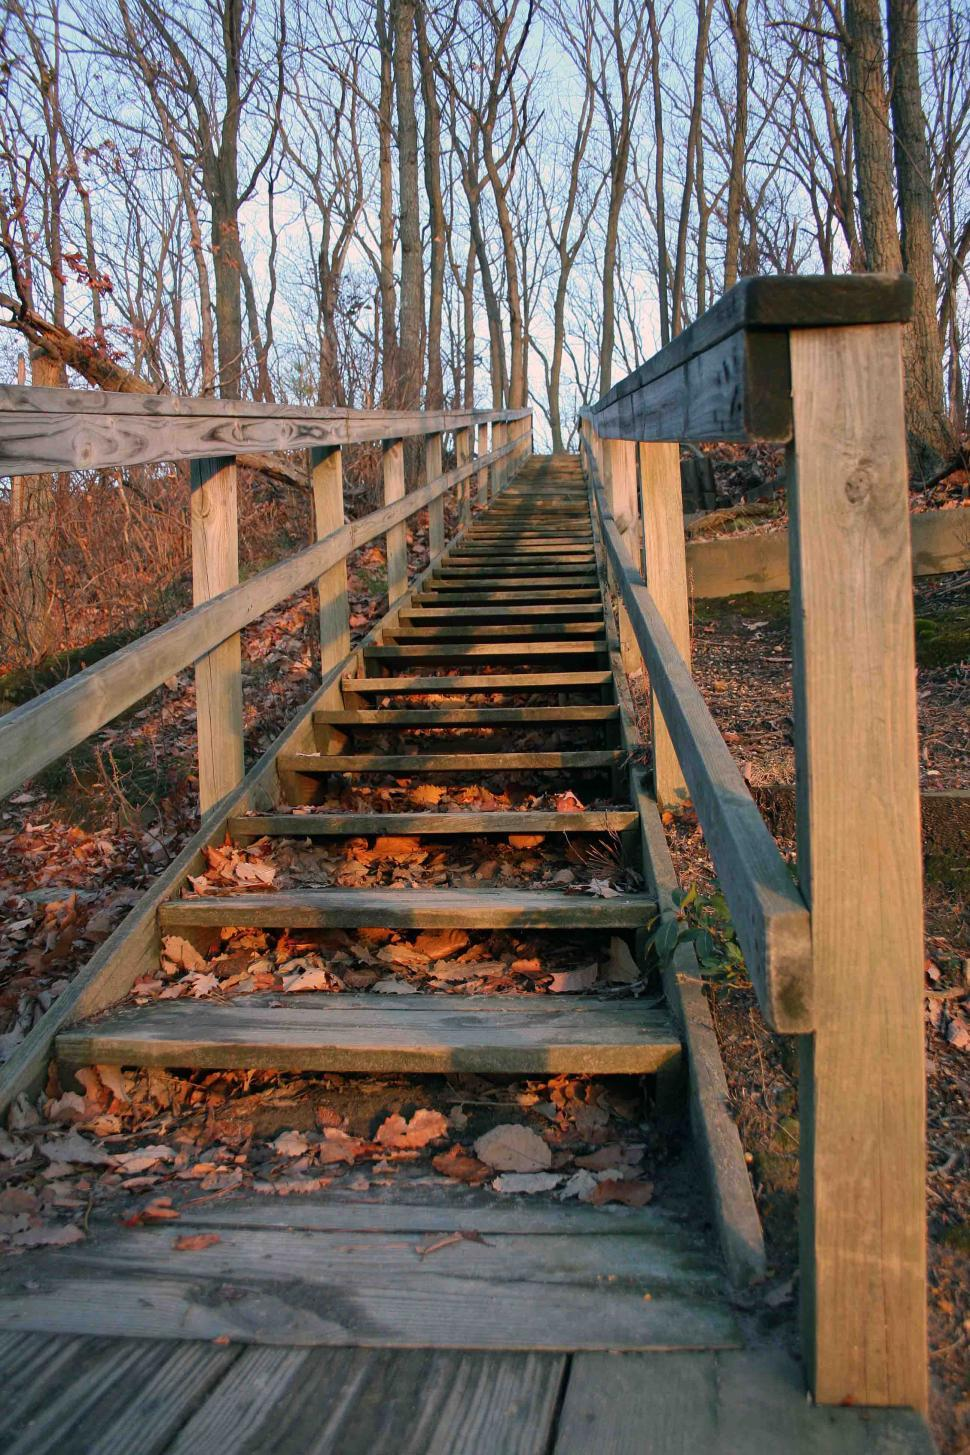 Download Free Stock HD Photo of  Wooden steps in Cheesequake State Park, NJ Online